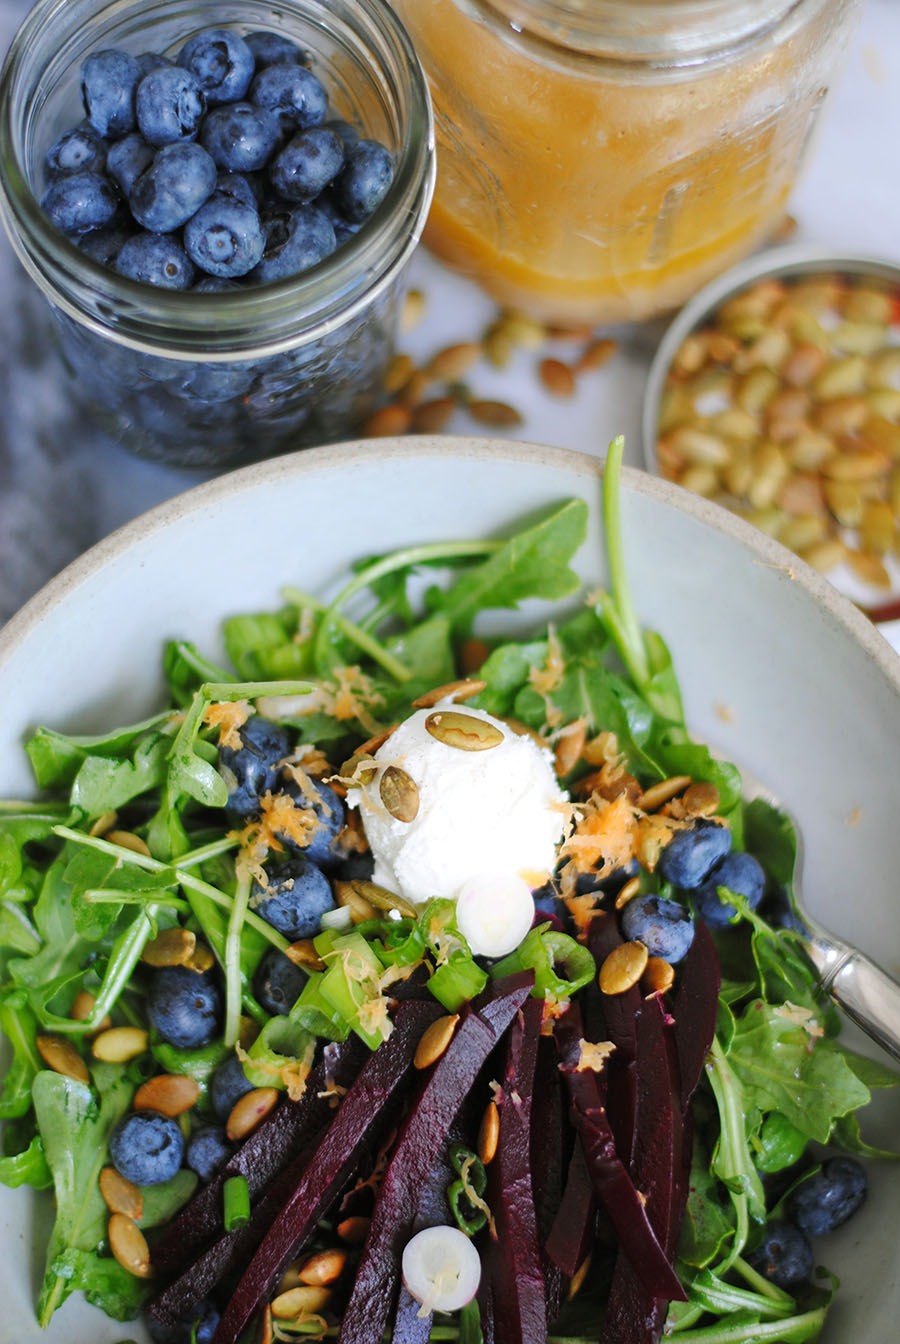 arugula with roasted red beets, blueberries, and citrus dressing | shemadeitshemight.com